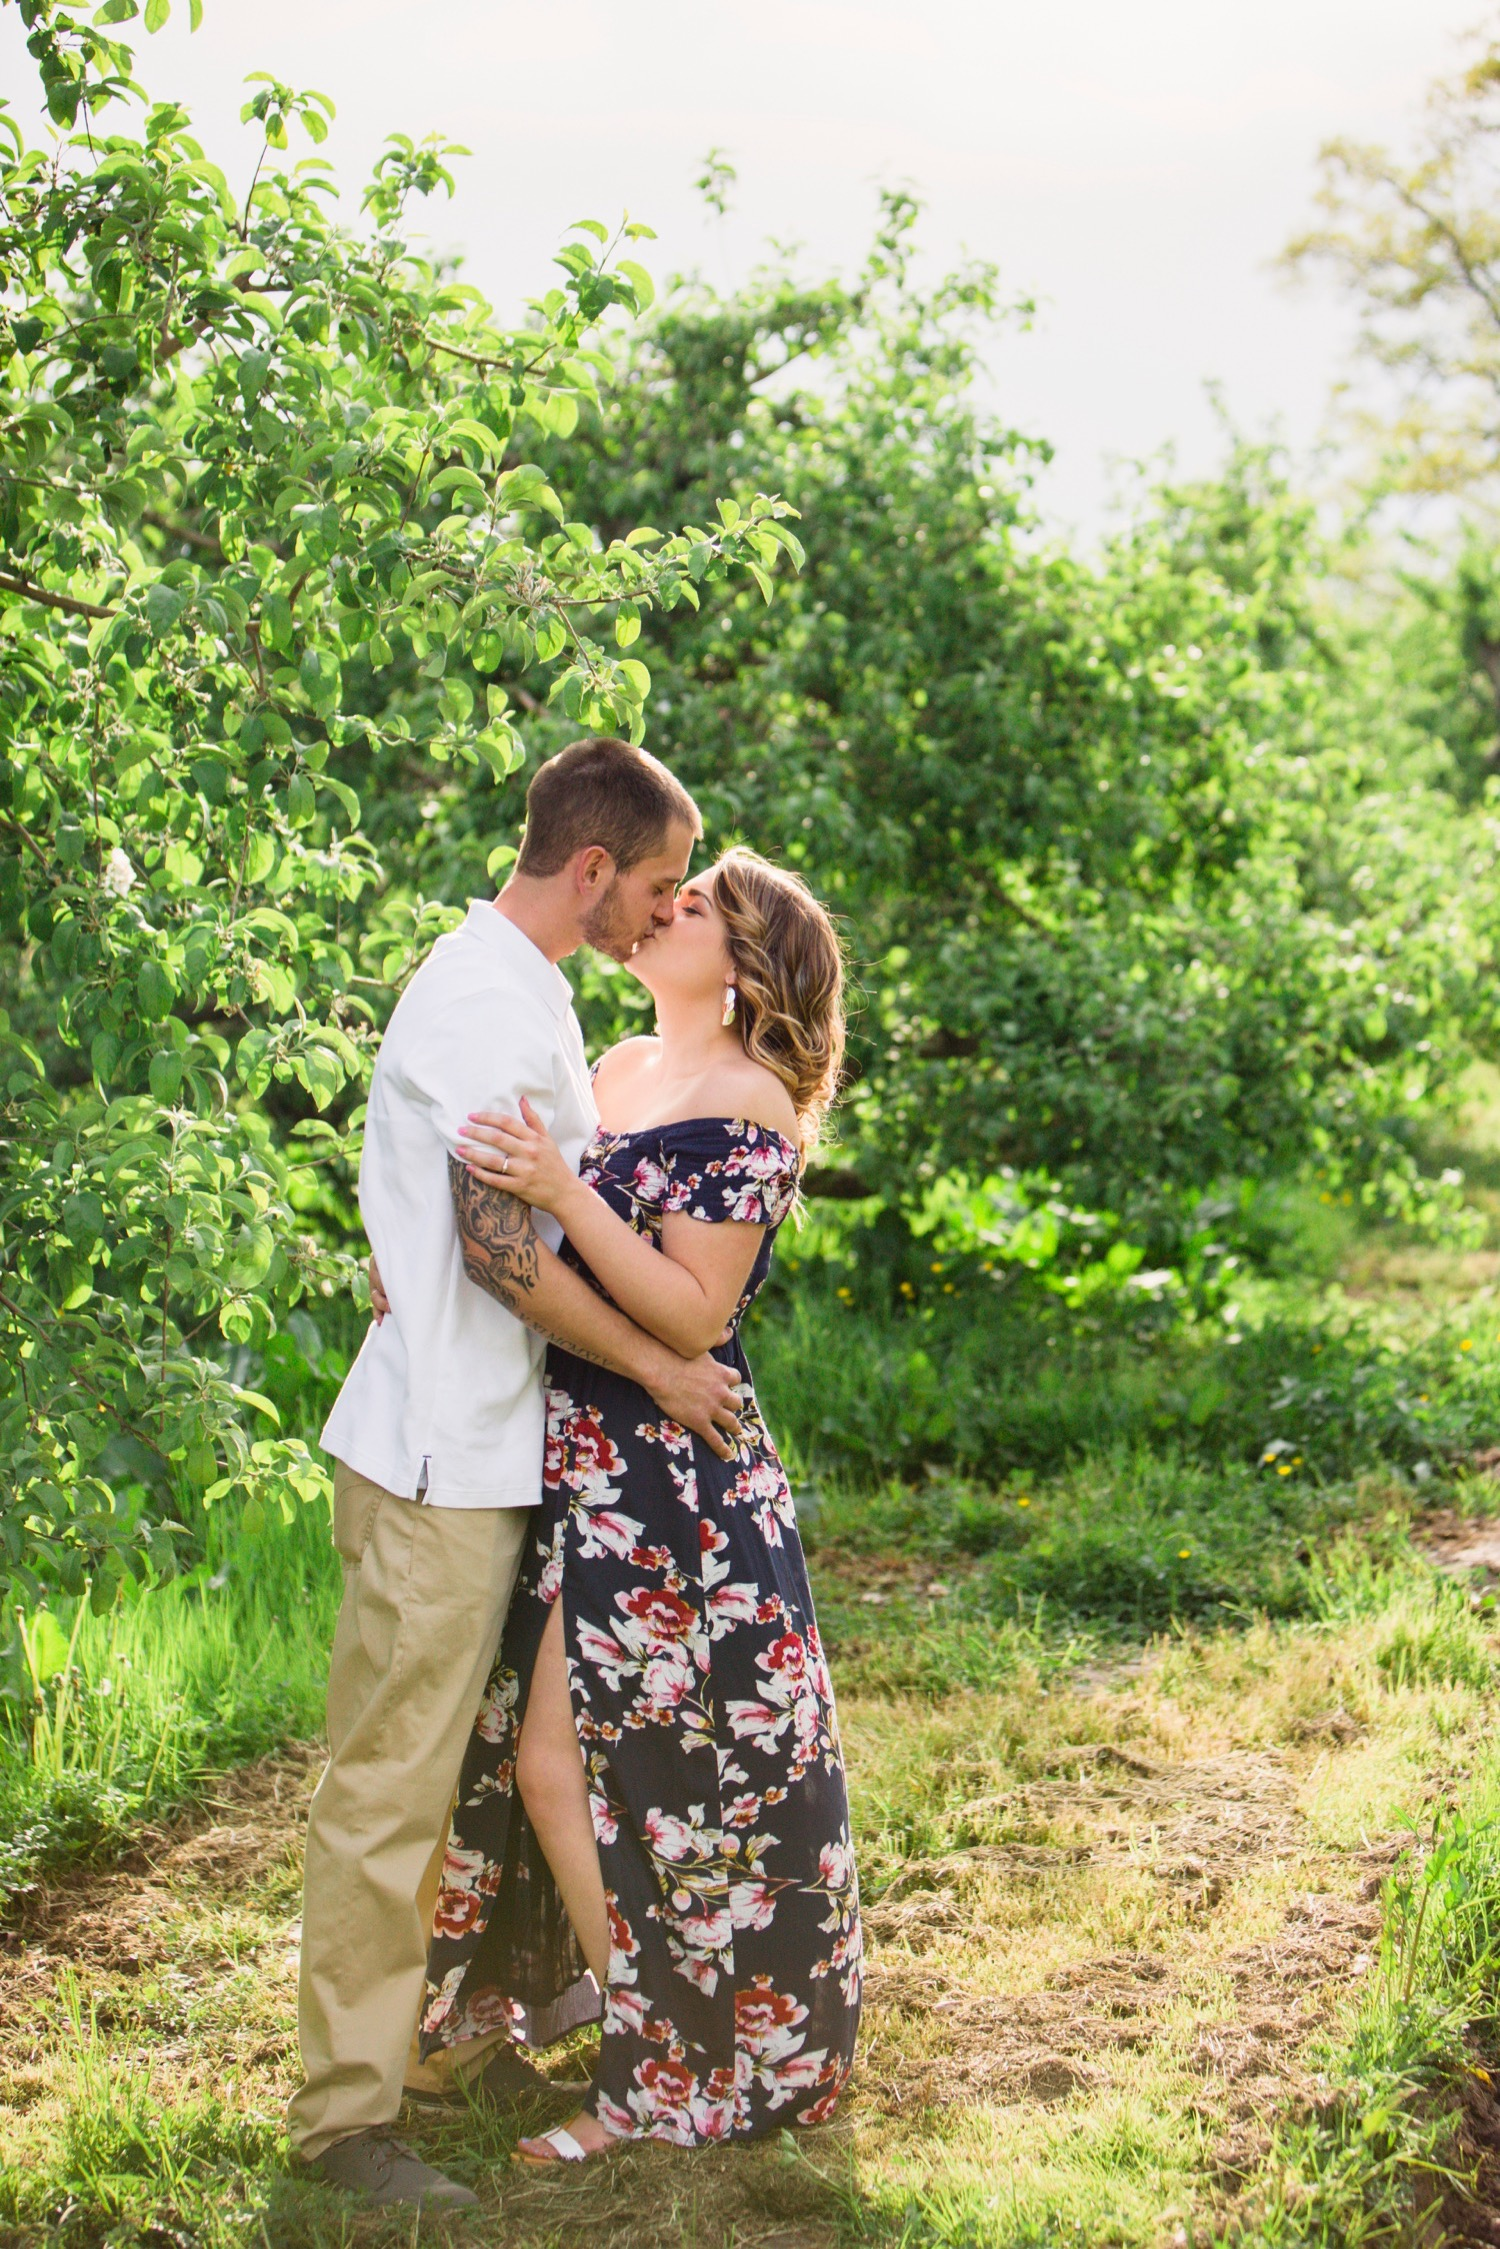 13_DowneyENG_57_nhphotographer_engagement_loudon_couples_dreambigphotography_loudonnh_dreambignh_wedding.jpg